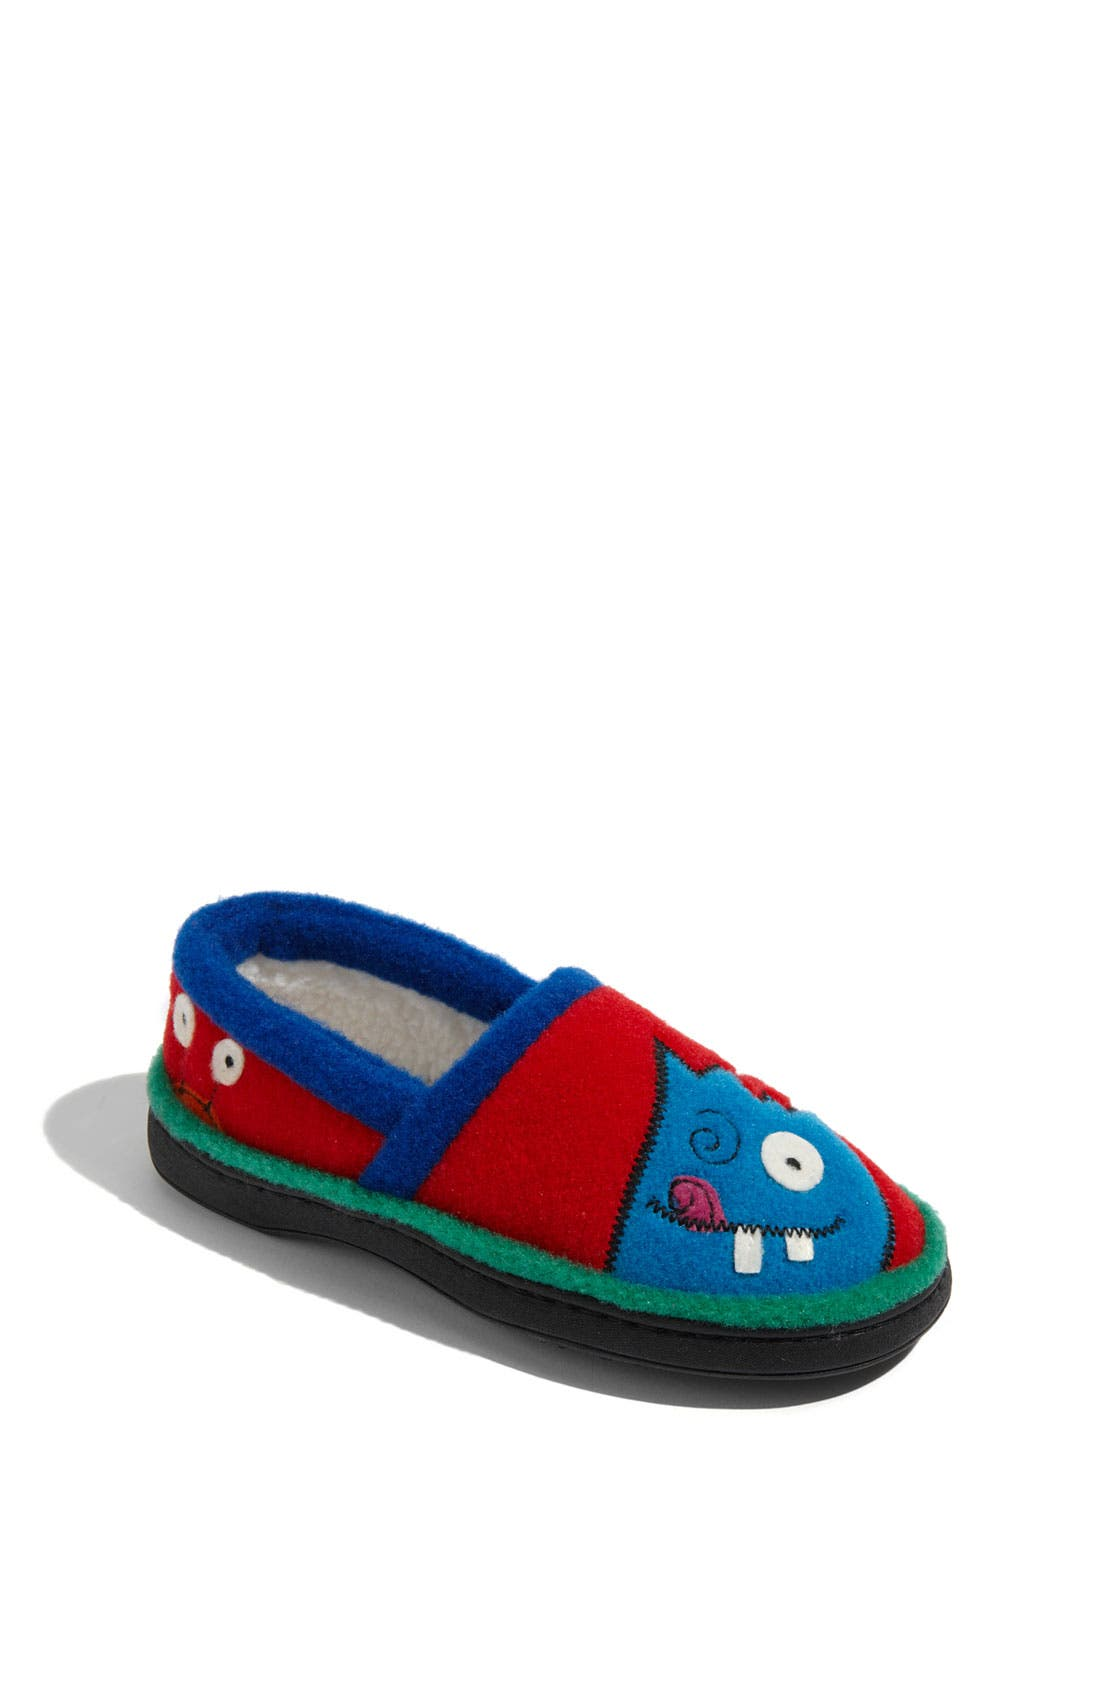 Alternate Image 1 Selected - Acorn 'Monster Moc' Slipper (Toddler, Little Kid & Big Kid)